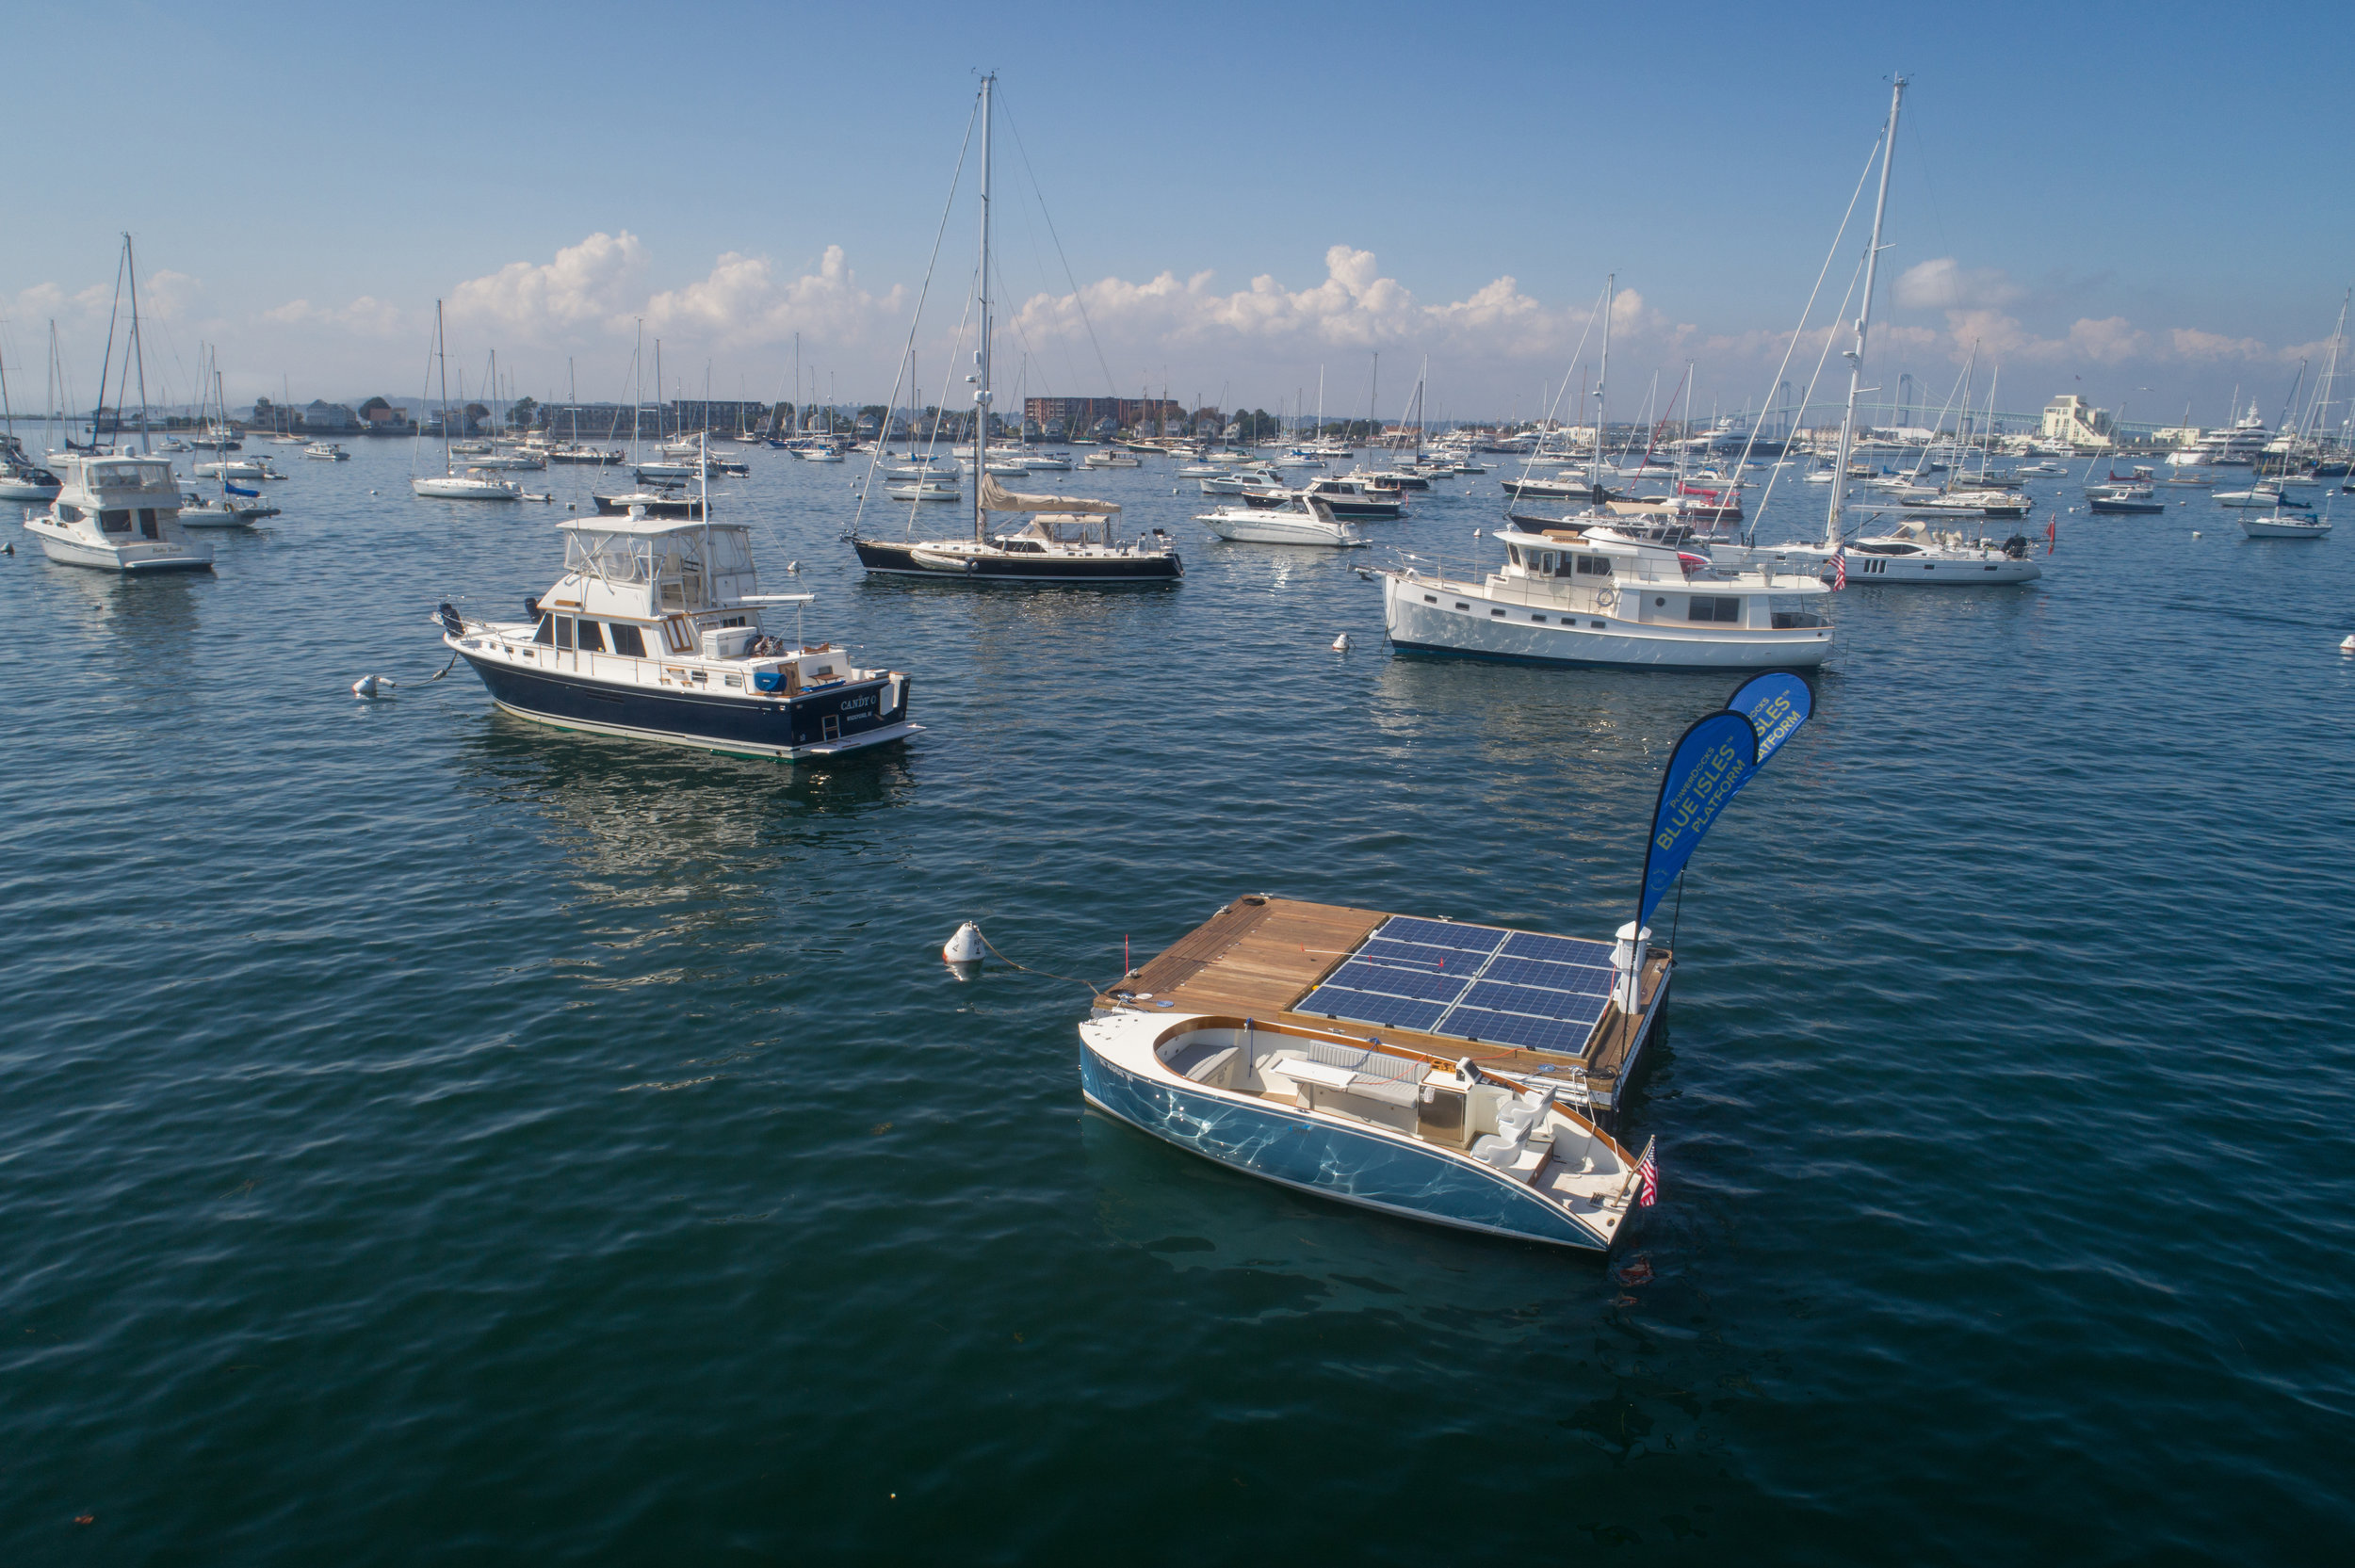 CASE STUDY A - PD1 NPT BOAT SHOW1.jpg